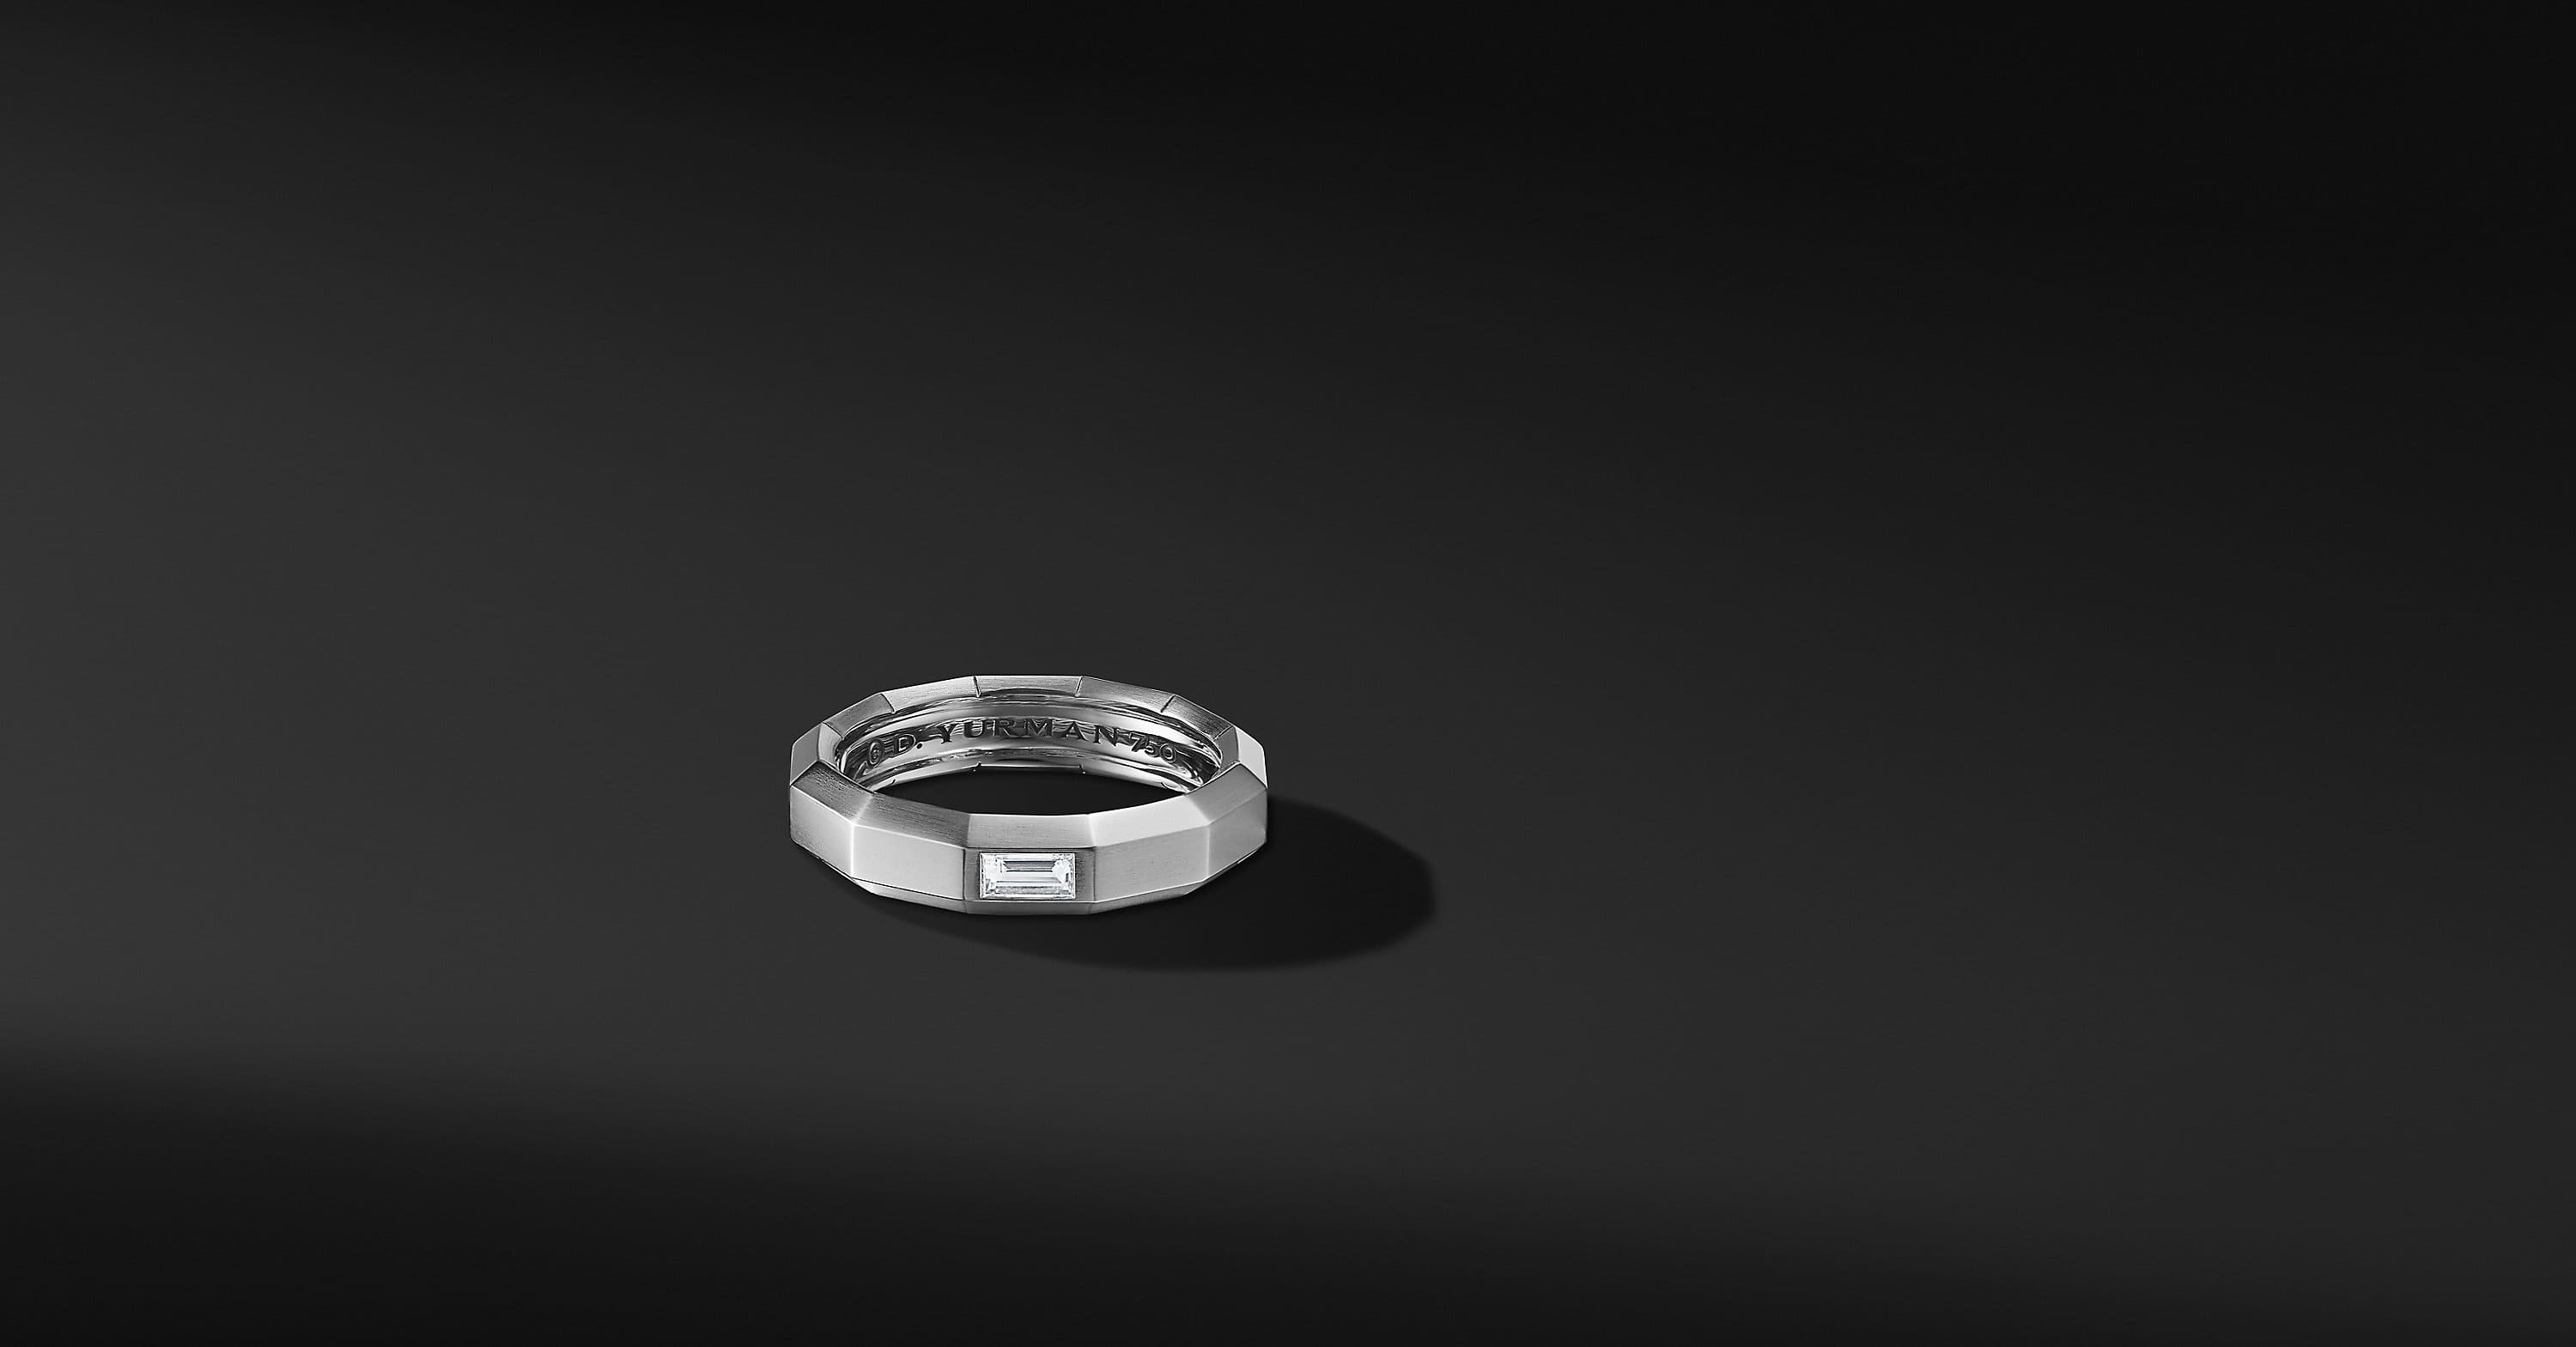 Faceted Band Ring in 18K White Gold with Diamonds, 6mm